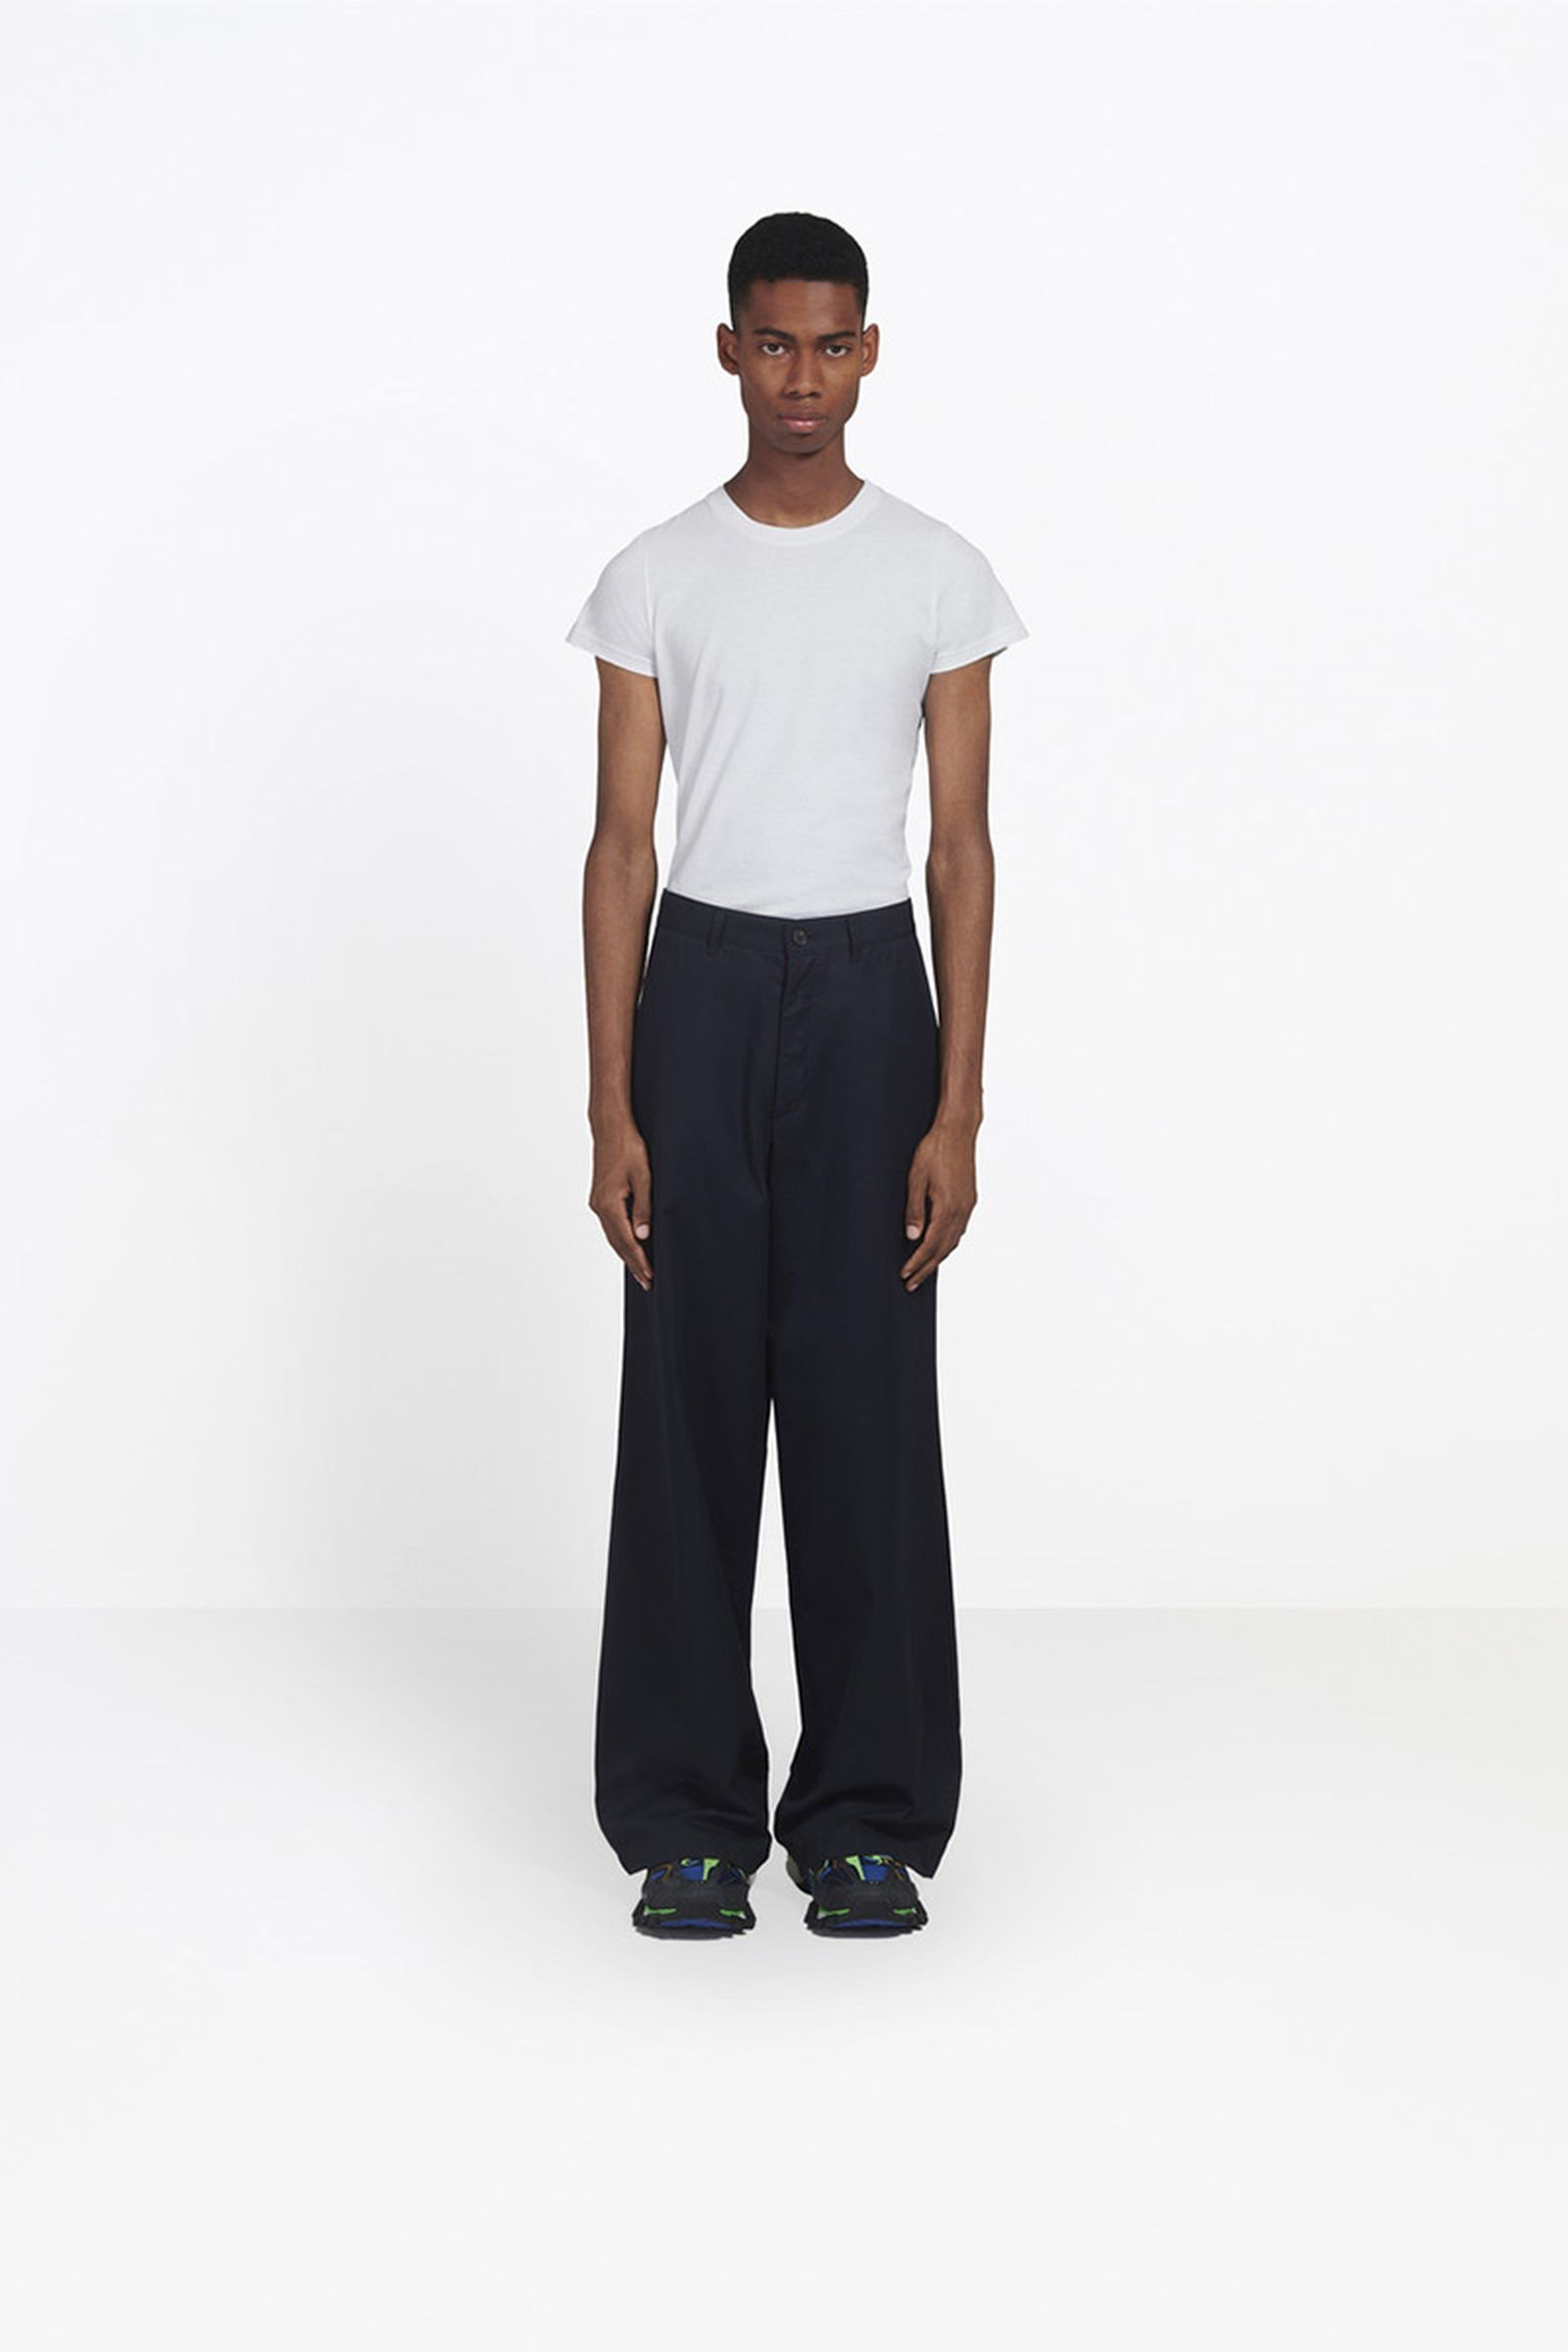 balenciaga ss19 collection buy now 2000s trends Srping 2019